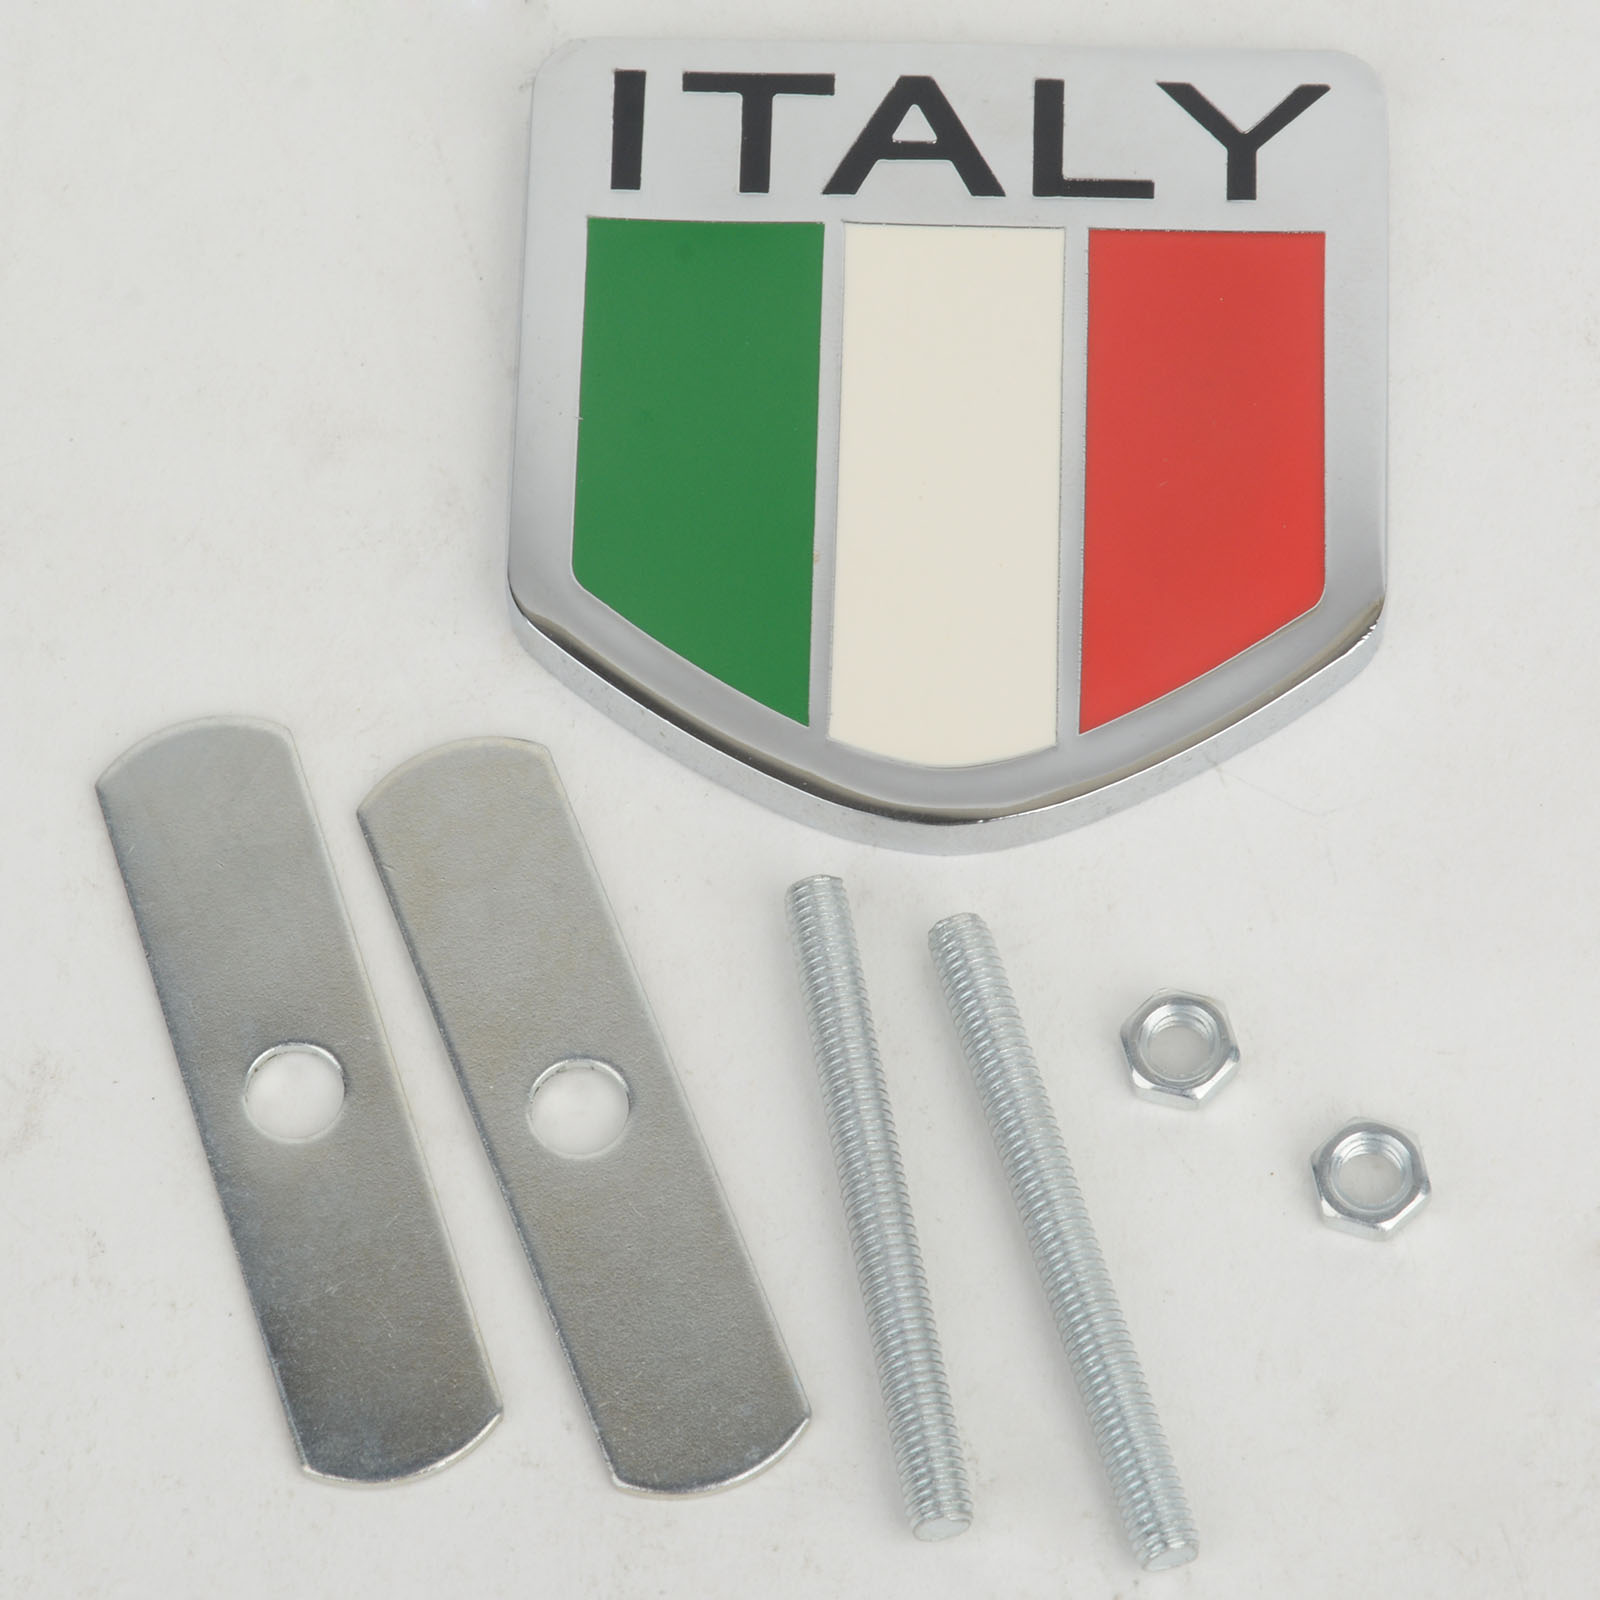 Metal Italy Italian Flag Car Auto Front Grill Grille Emblem Badge Sticker Decal